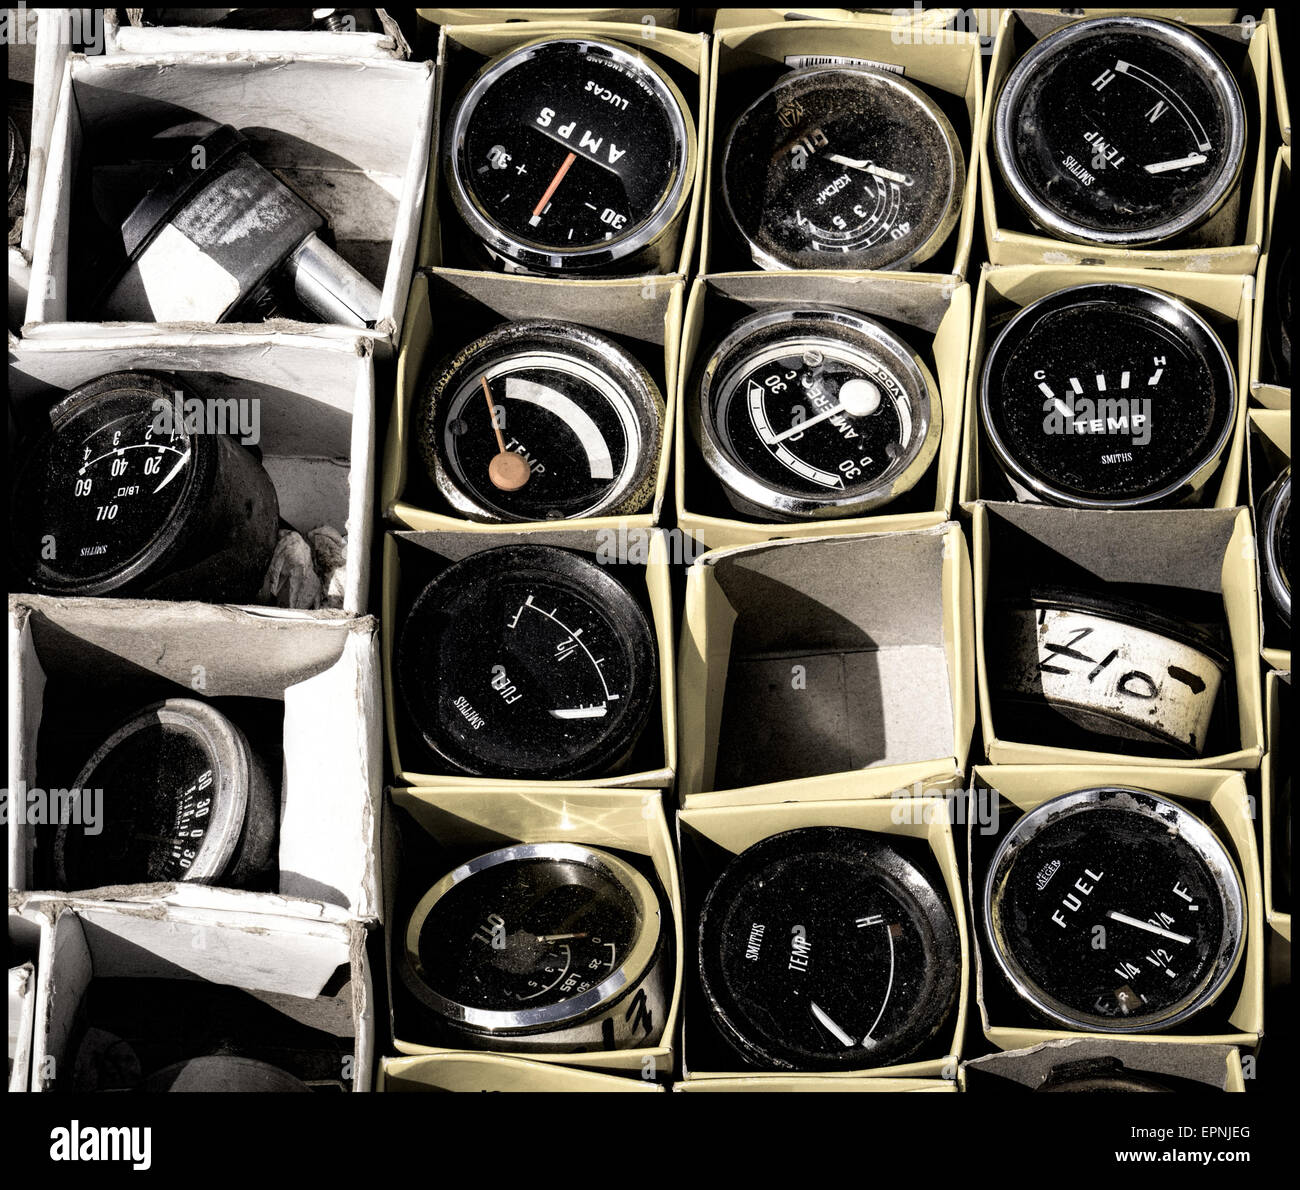 Old car guages and dials - Stock Image